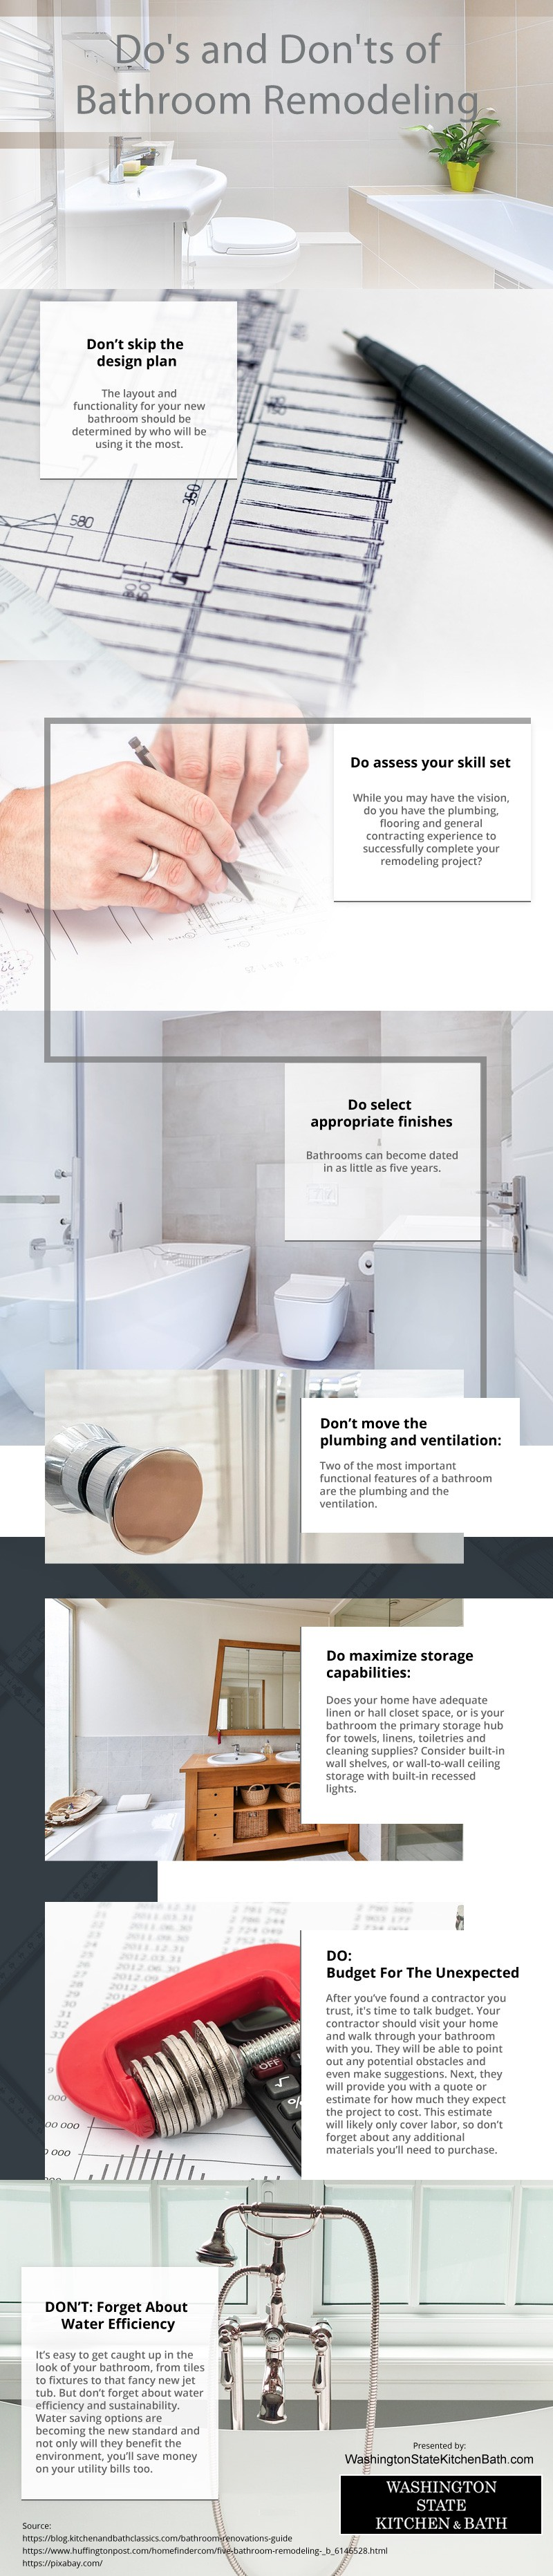 Do's and Don'ts of Bathroom Remodeling